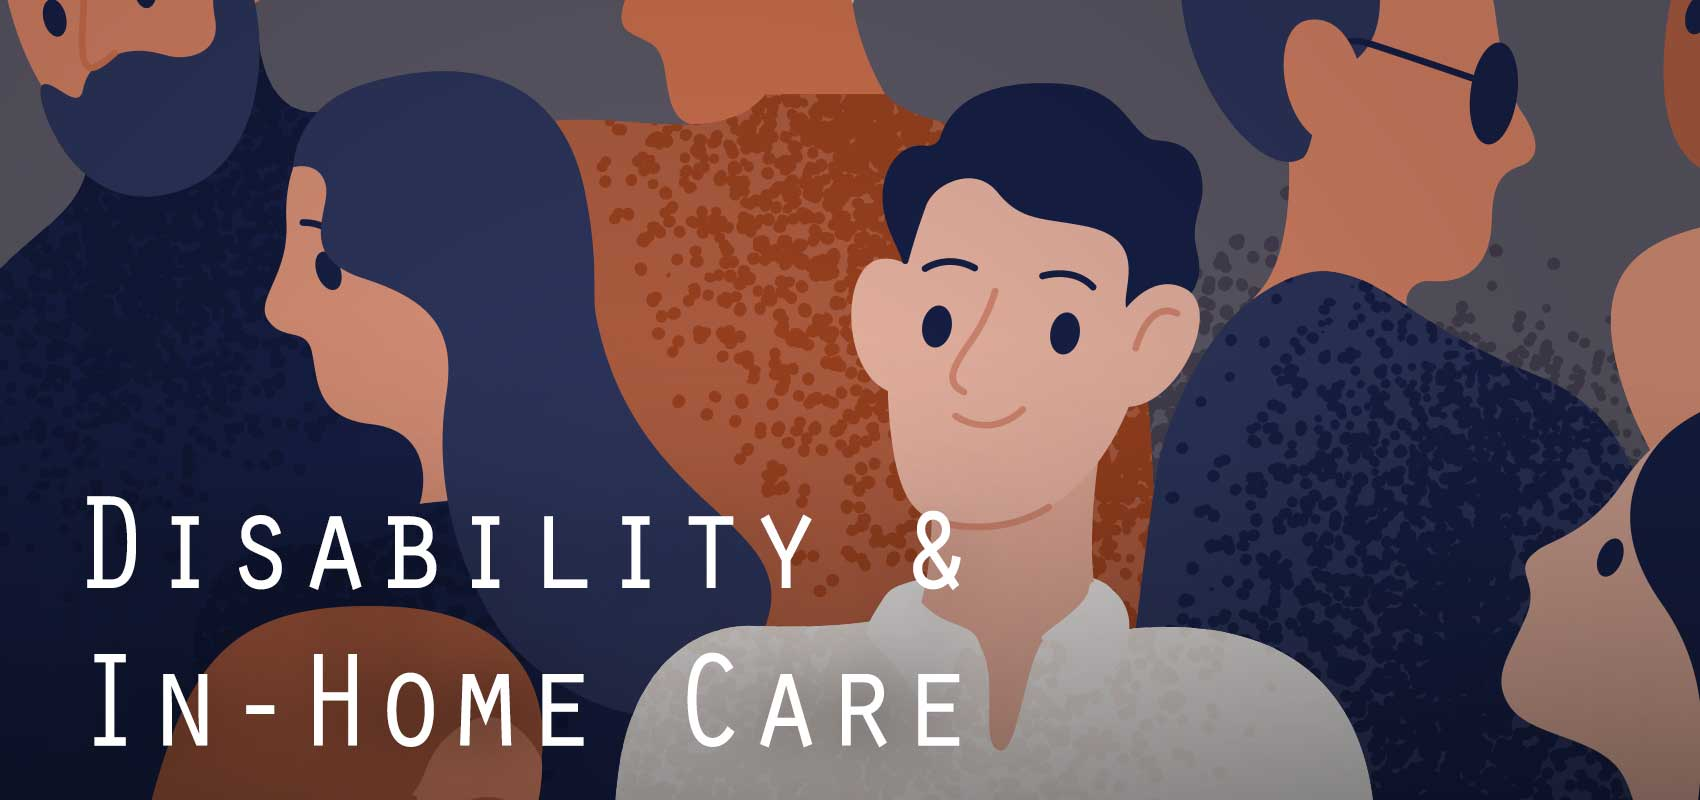 Disability and In-Home Care